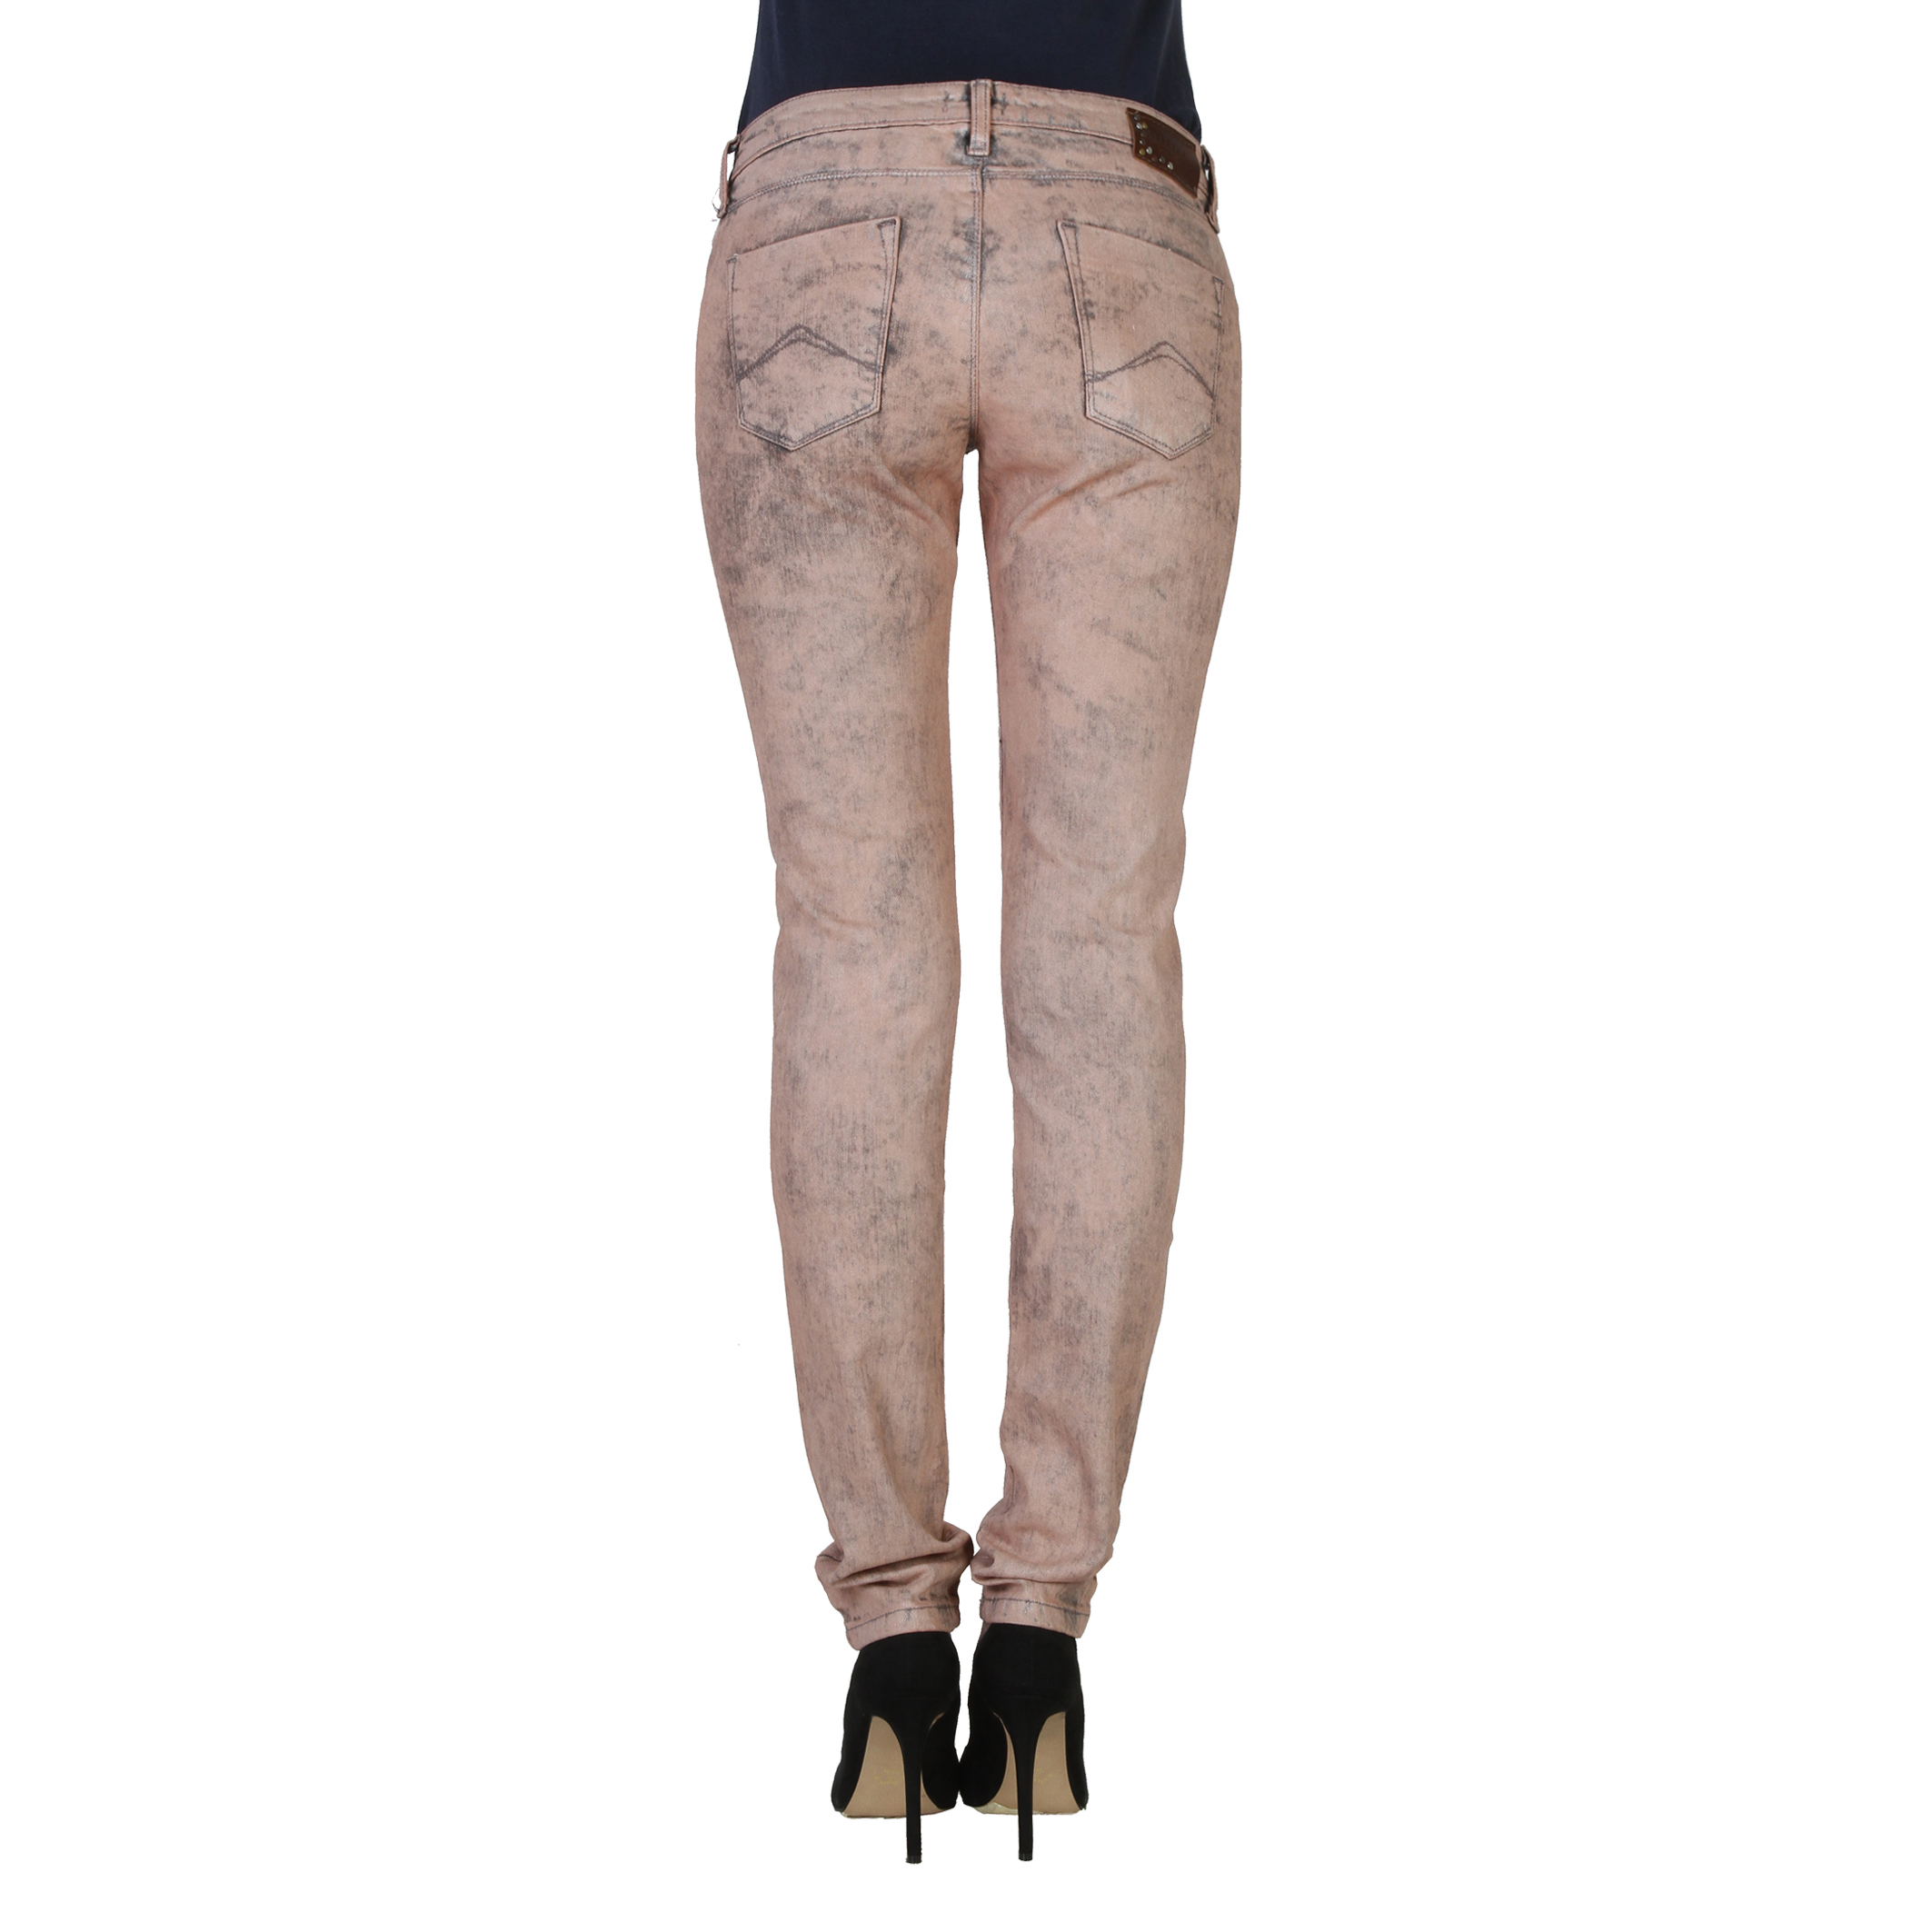 Jeans   Carrera Jeans 00777S_0970X pink